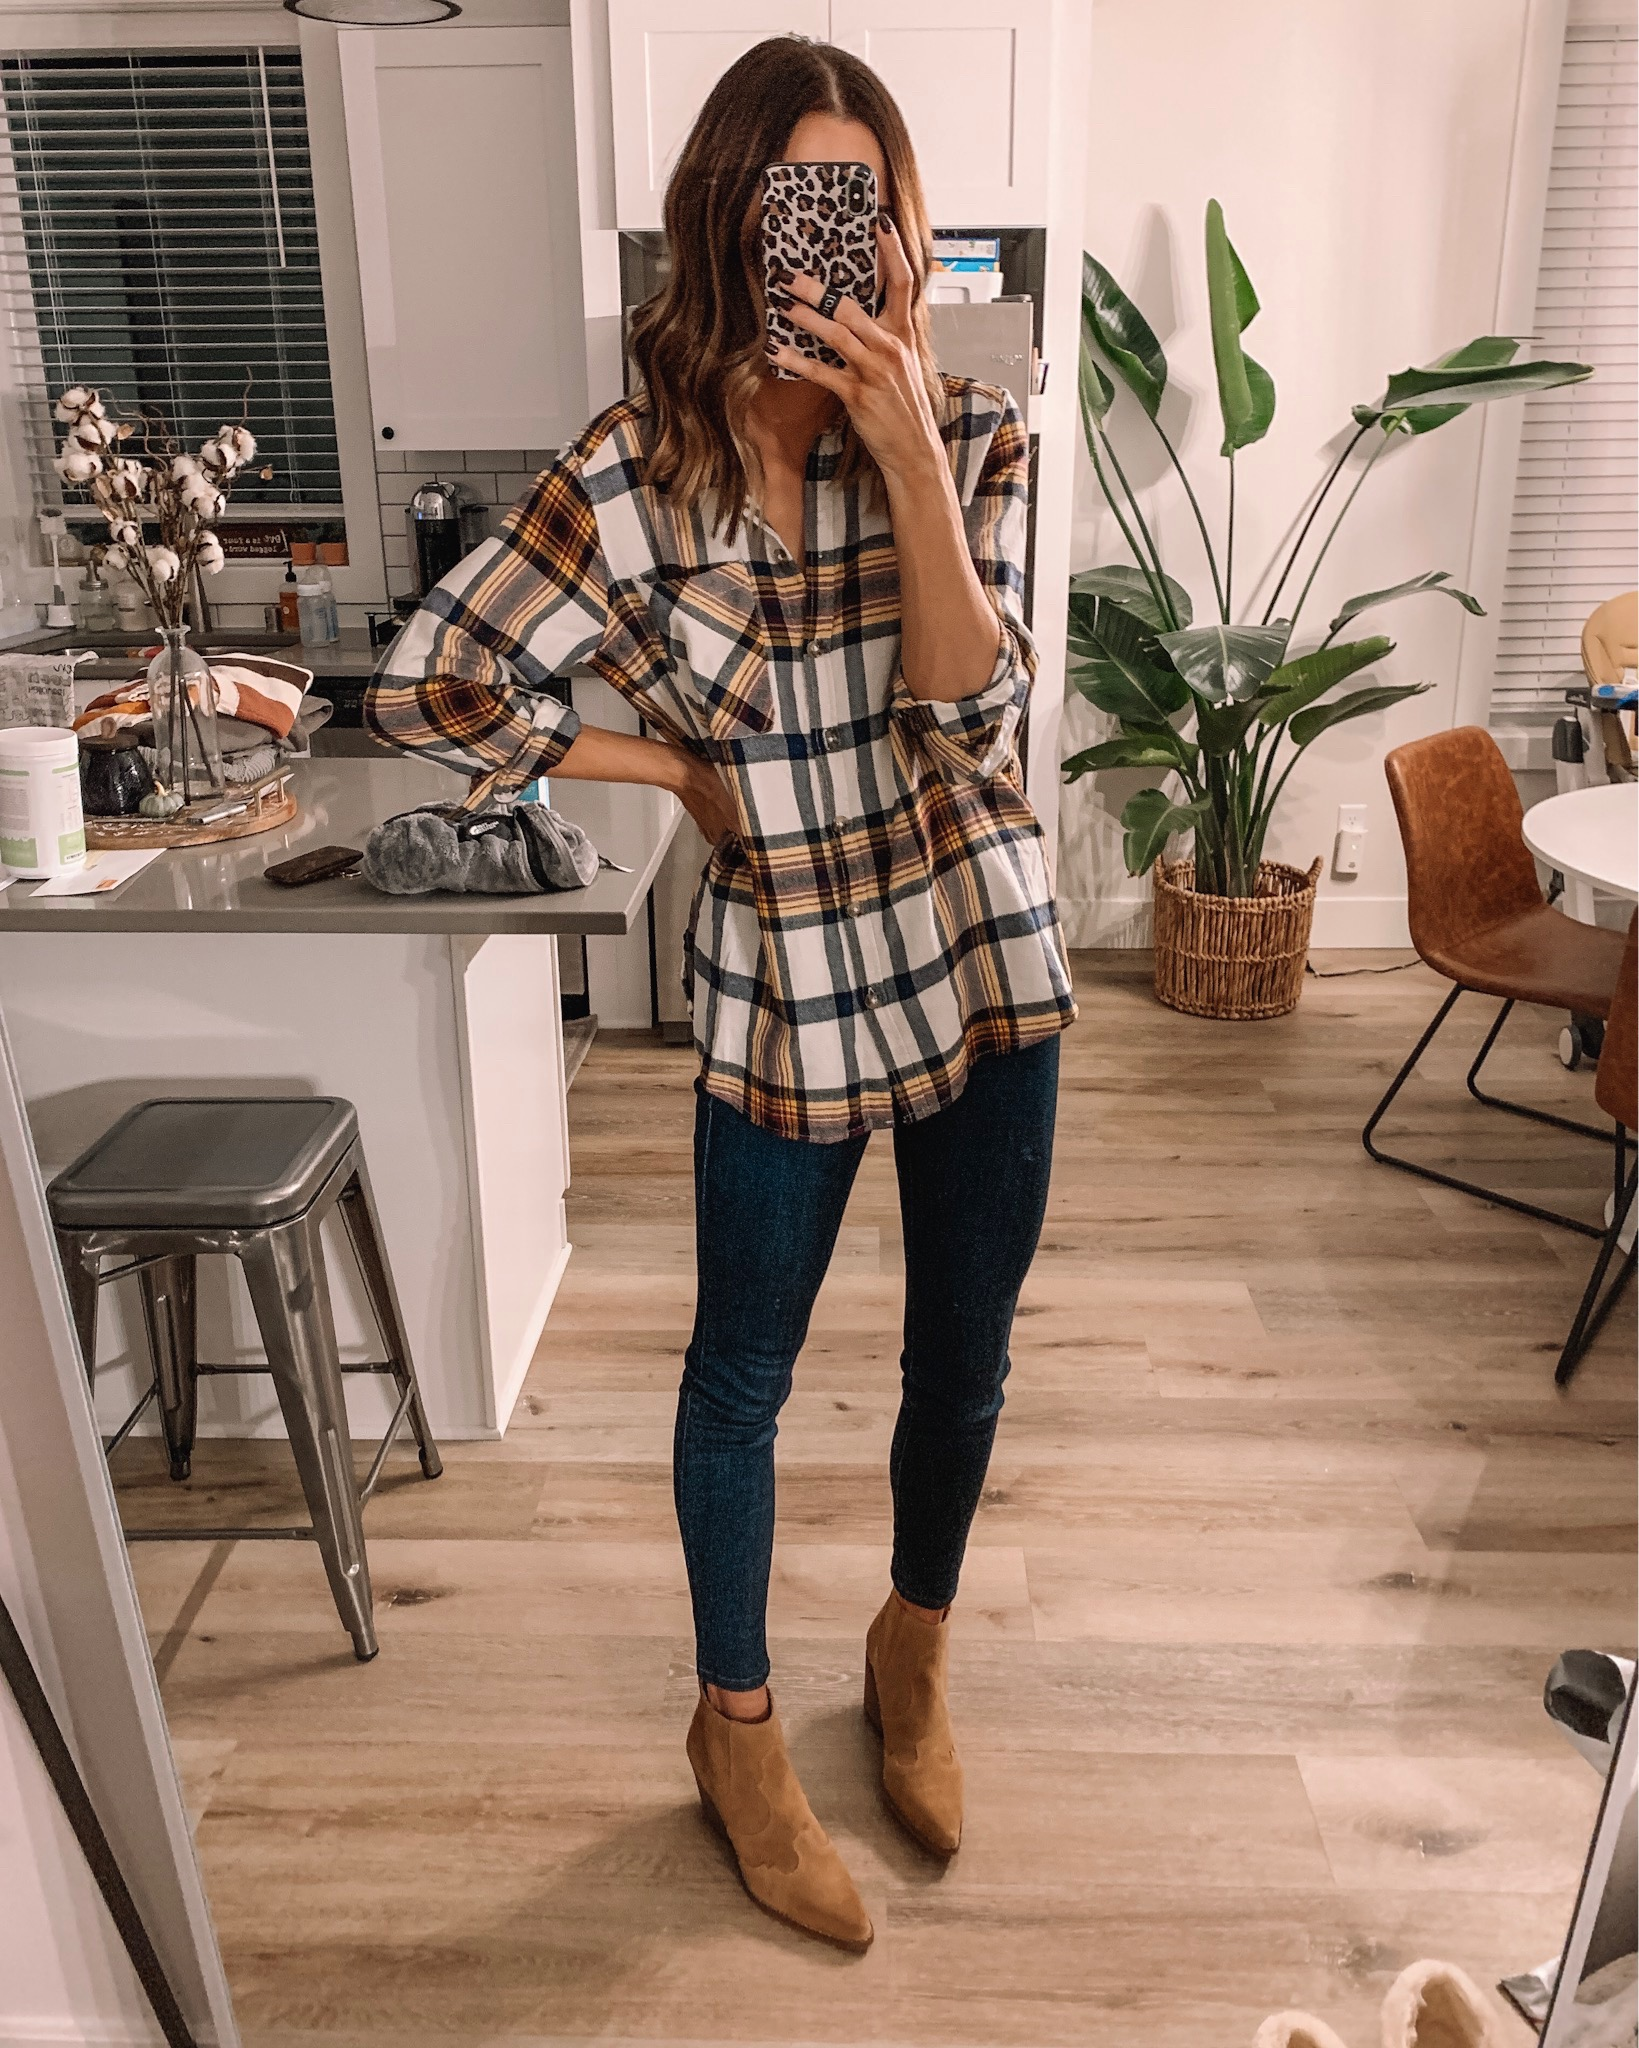 express Black Friday cyber Monday sale 2019. boyfriend flannel, affordable fashion, winter fashion, fall outfit, Minneapolis blogger